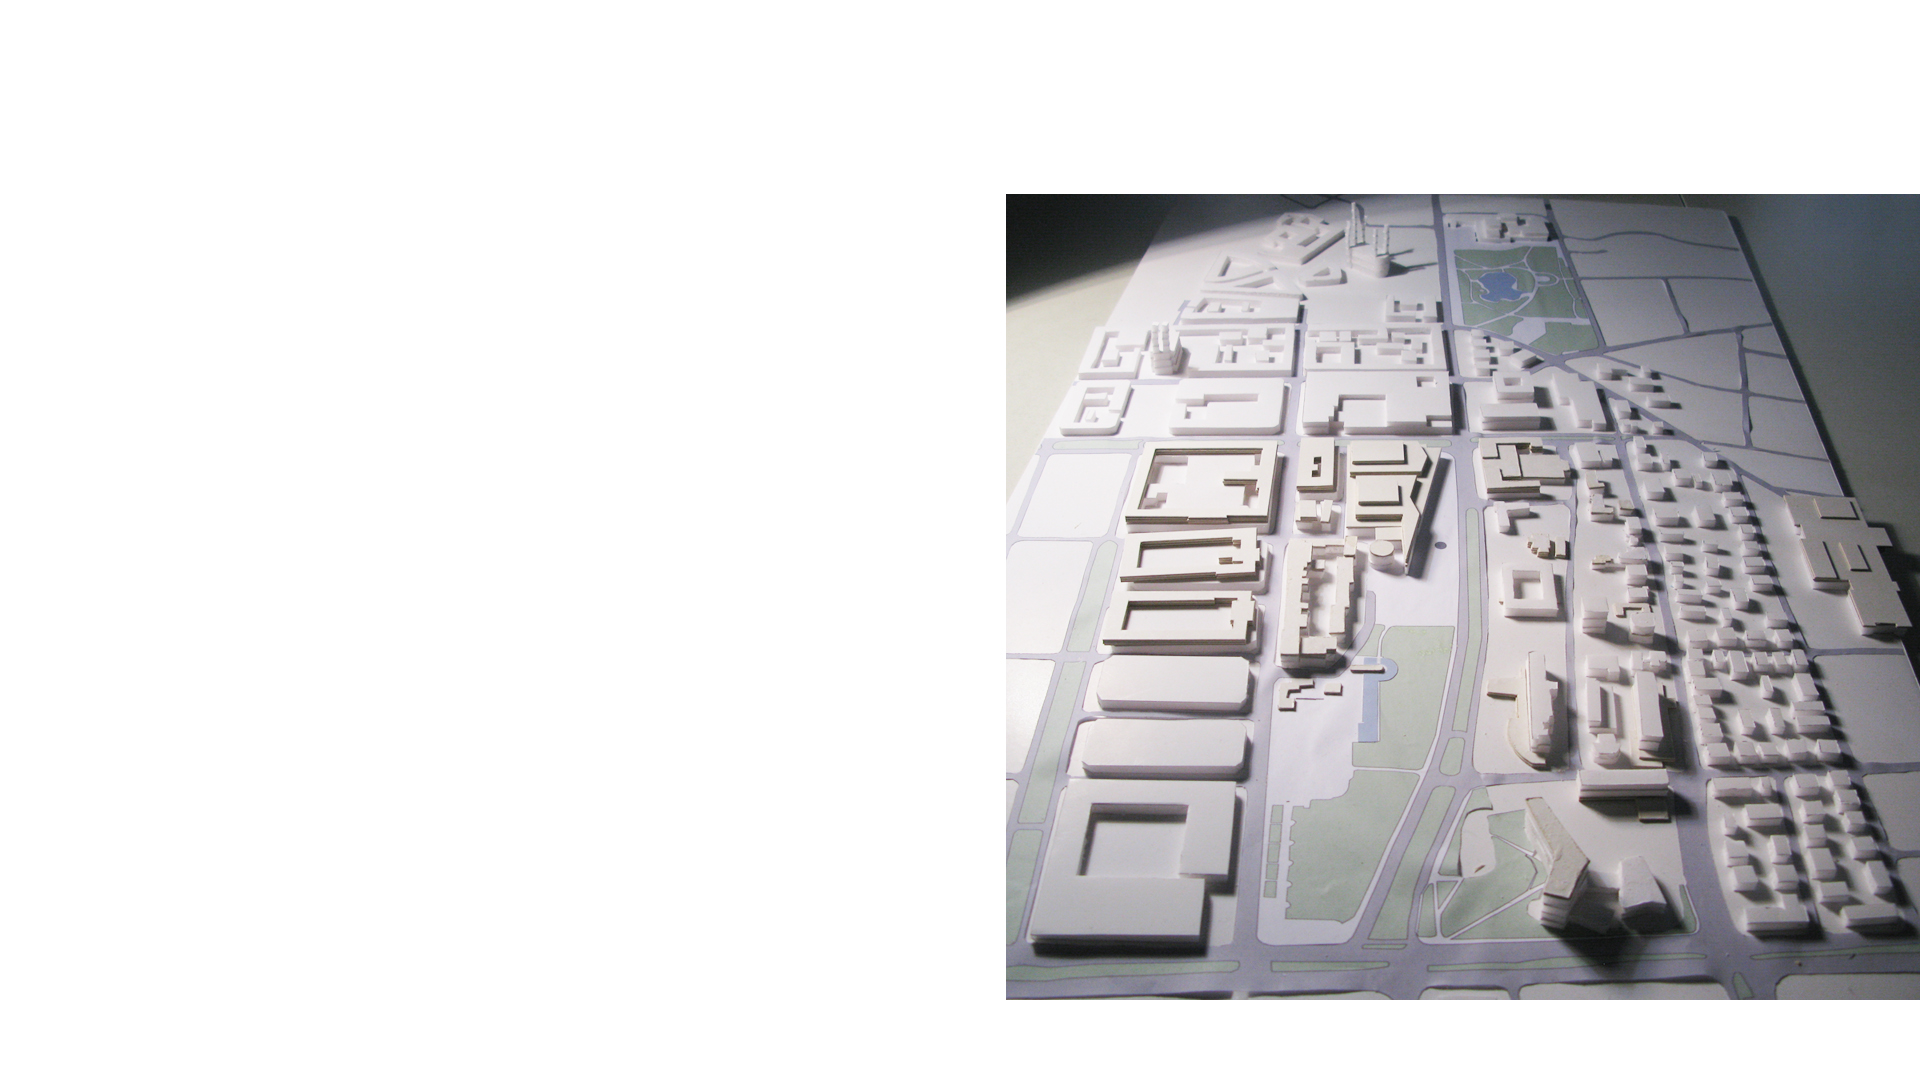 Context model of the city centre and proposed Rhein Main Hallen Conference and Exhibition Centre Wiesbaden Germany